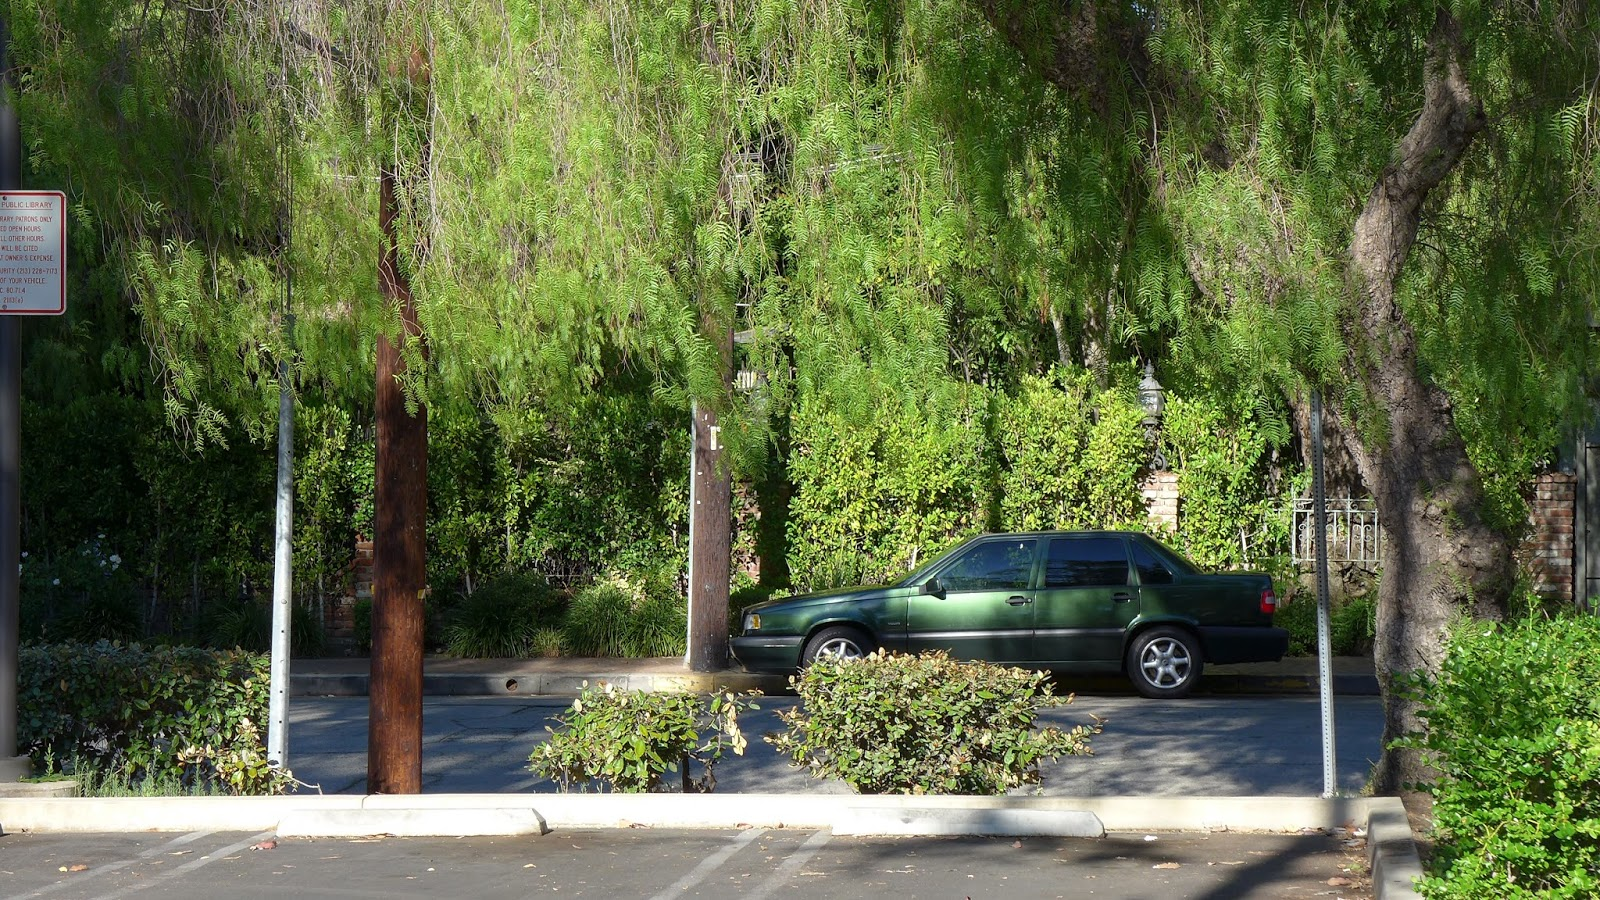 Volvo - Woodland Hills Library, Woodland Hills, CA